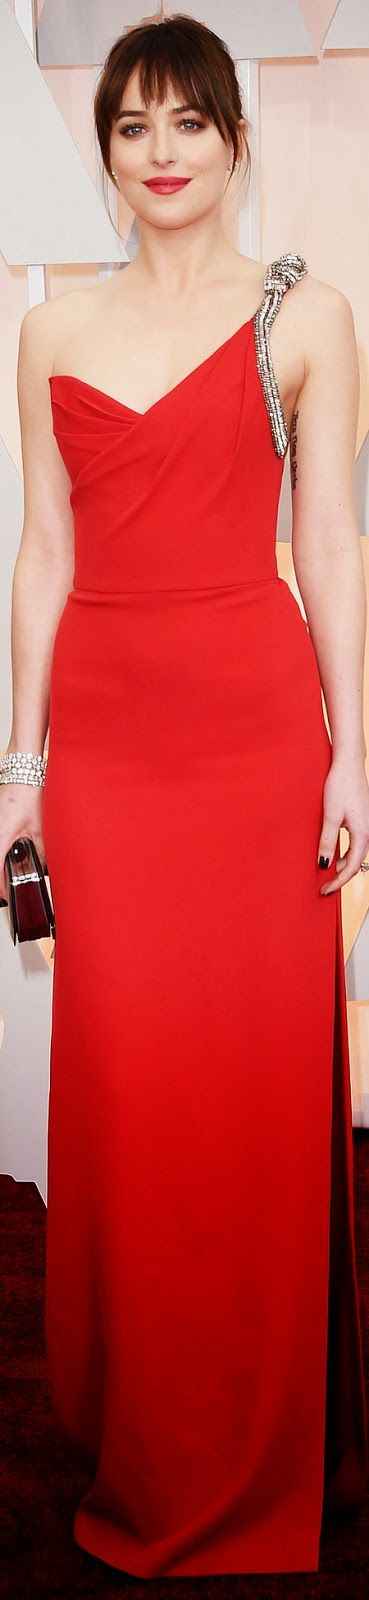 Dakota Johnson steps out in a scarlet Saint Laurent gown with crystal-embellished strap. 2015 Oscar Red Carpet